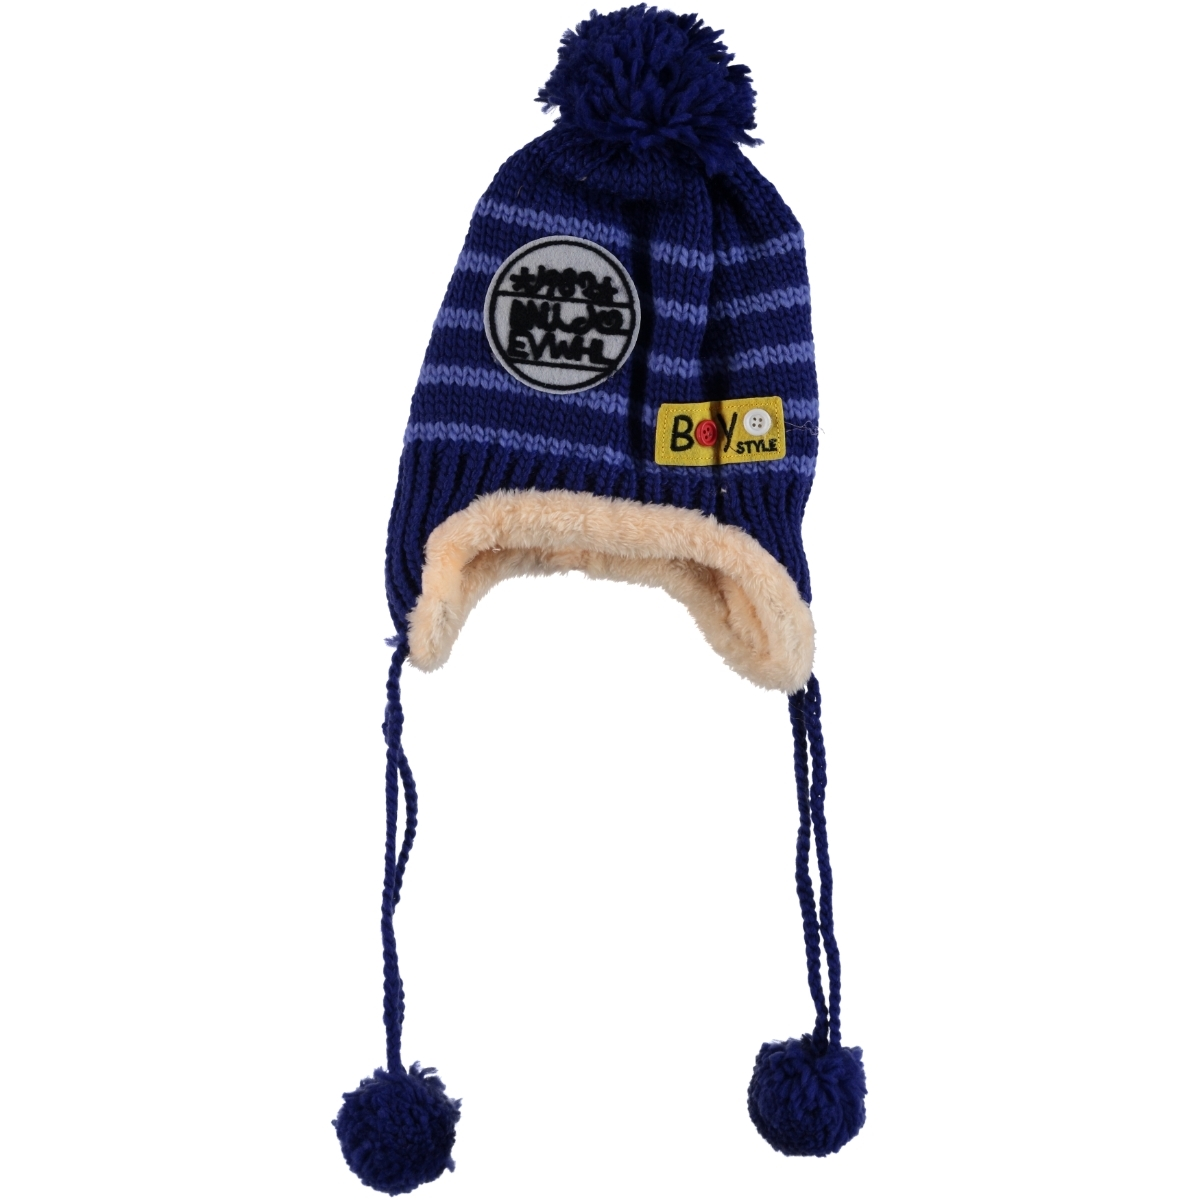 Prahar Boy Blue Beanie Saks 8-12 Years